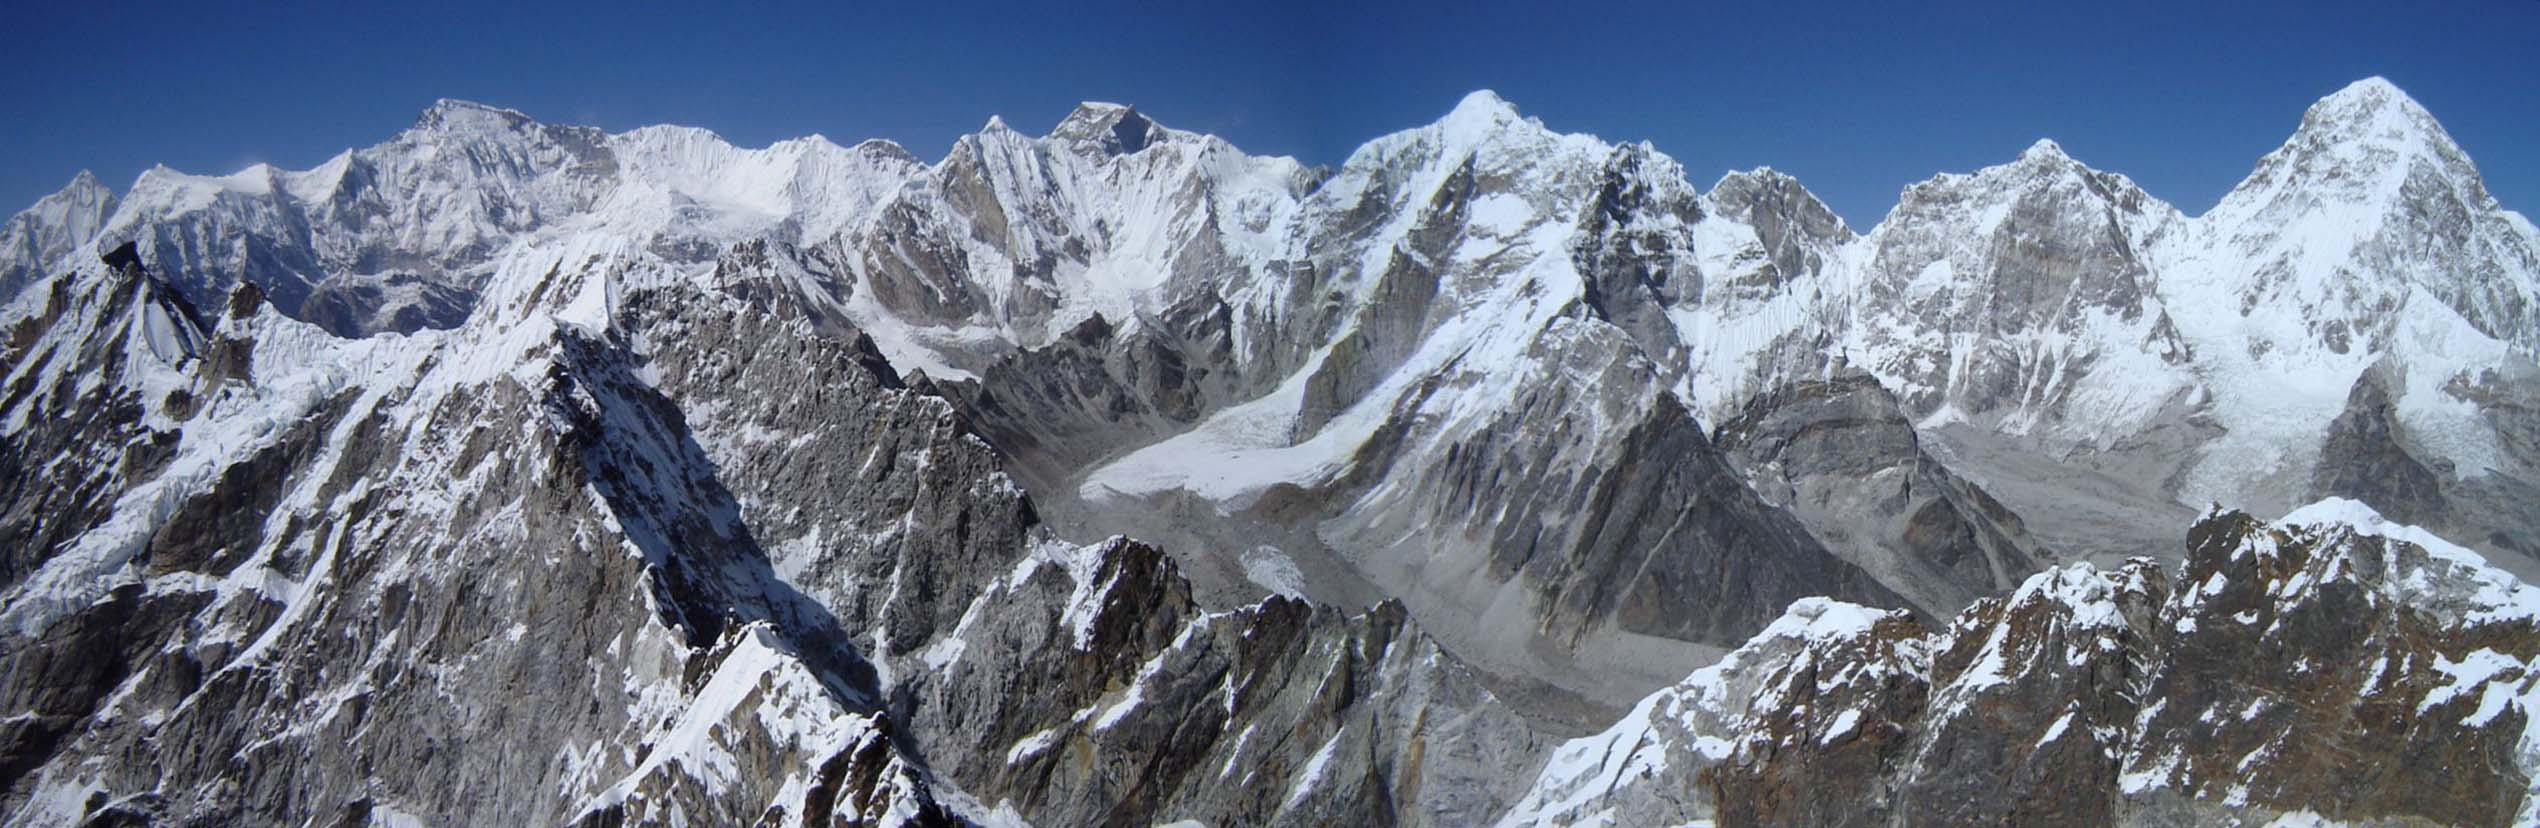 Lobuje East Everest Panorama.jpg